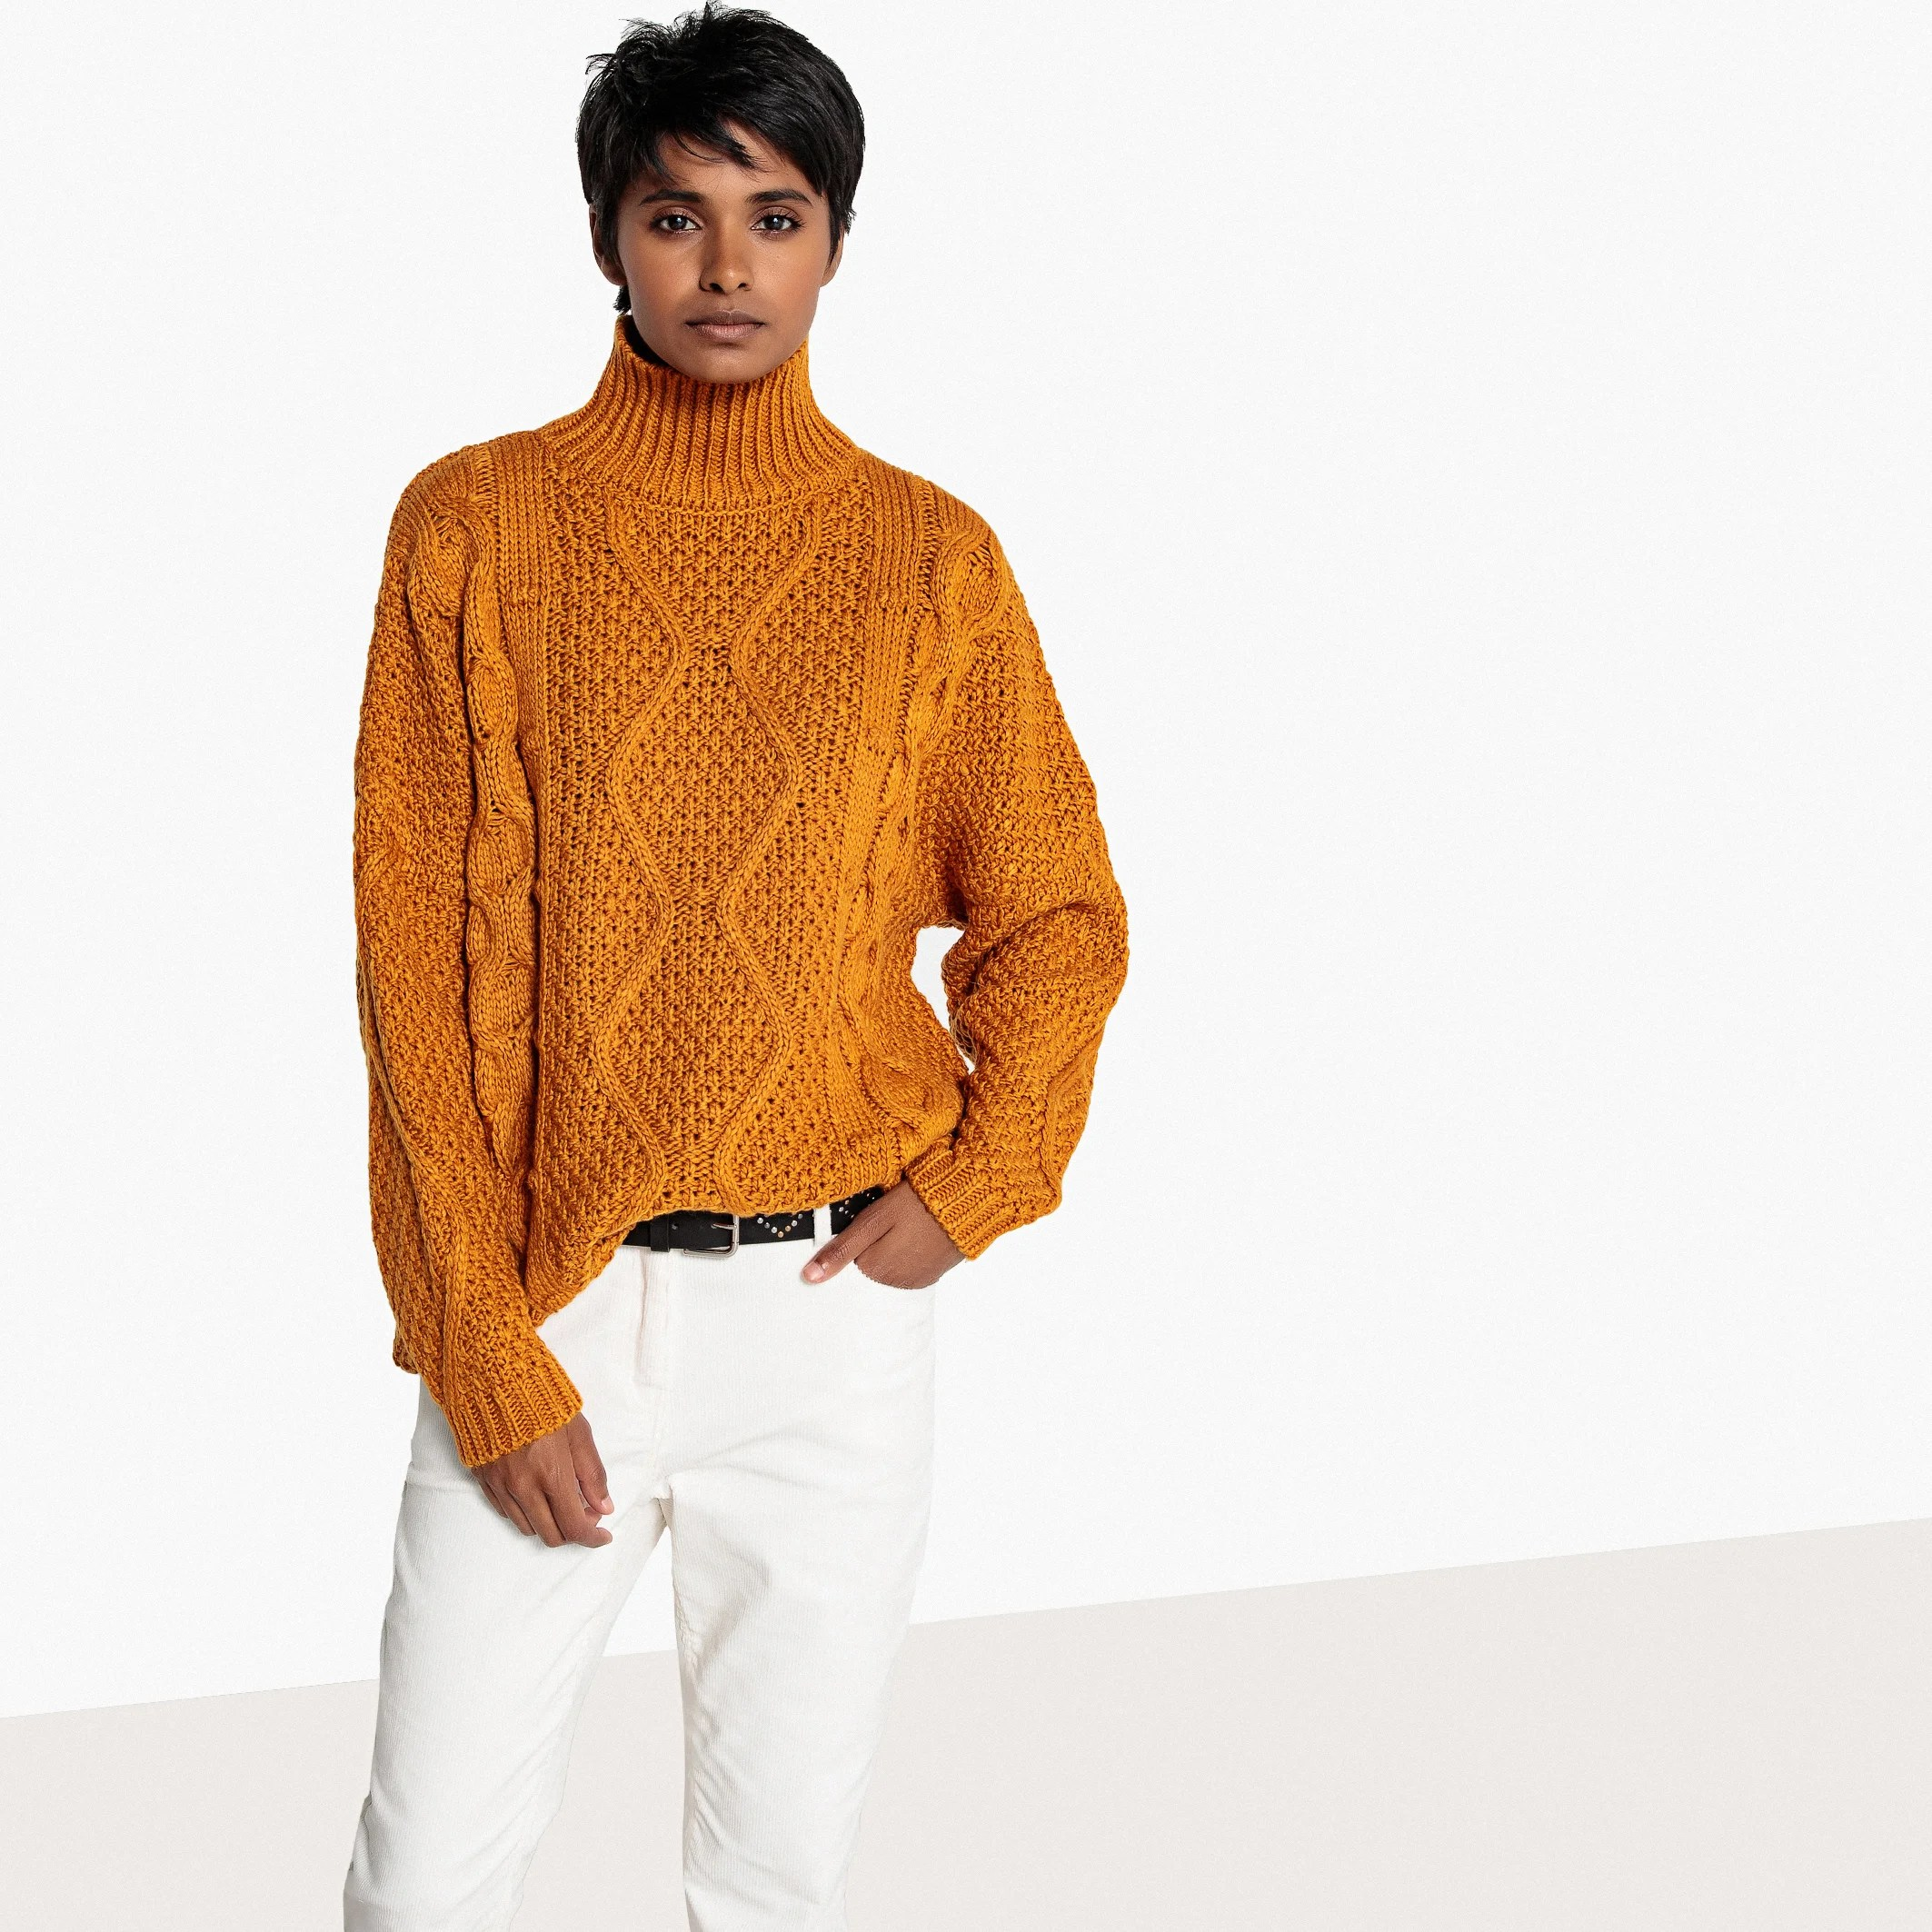 Mustard Cable Knit Jumper £22